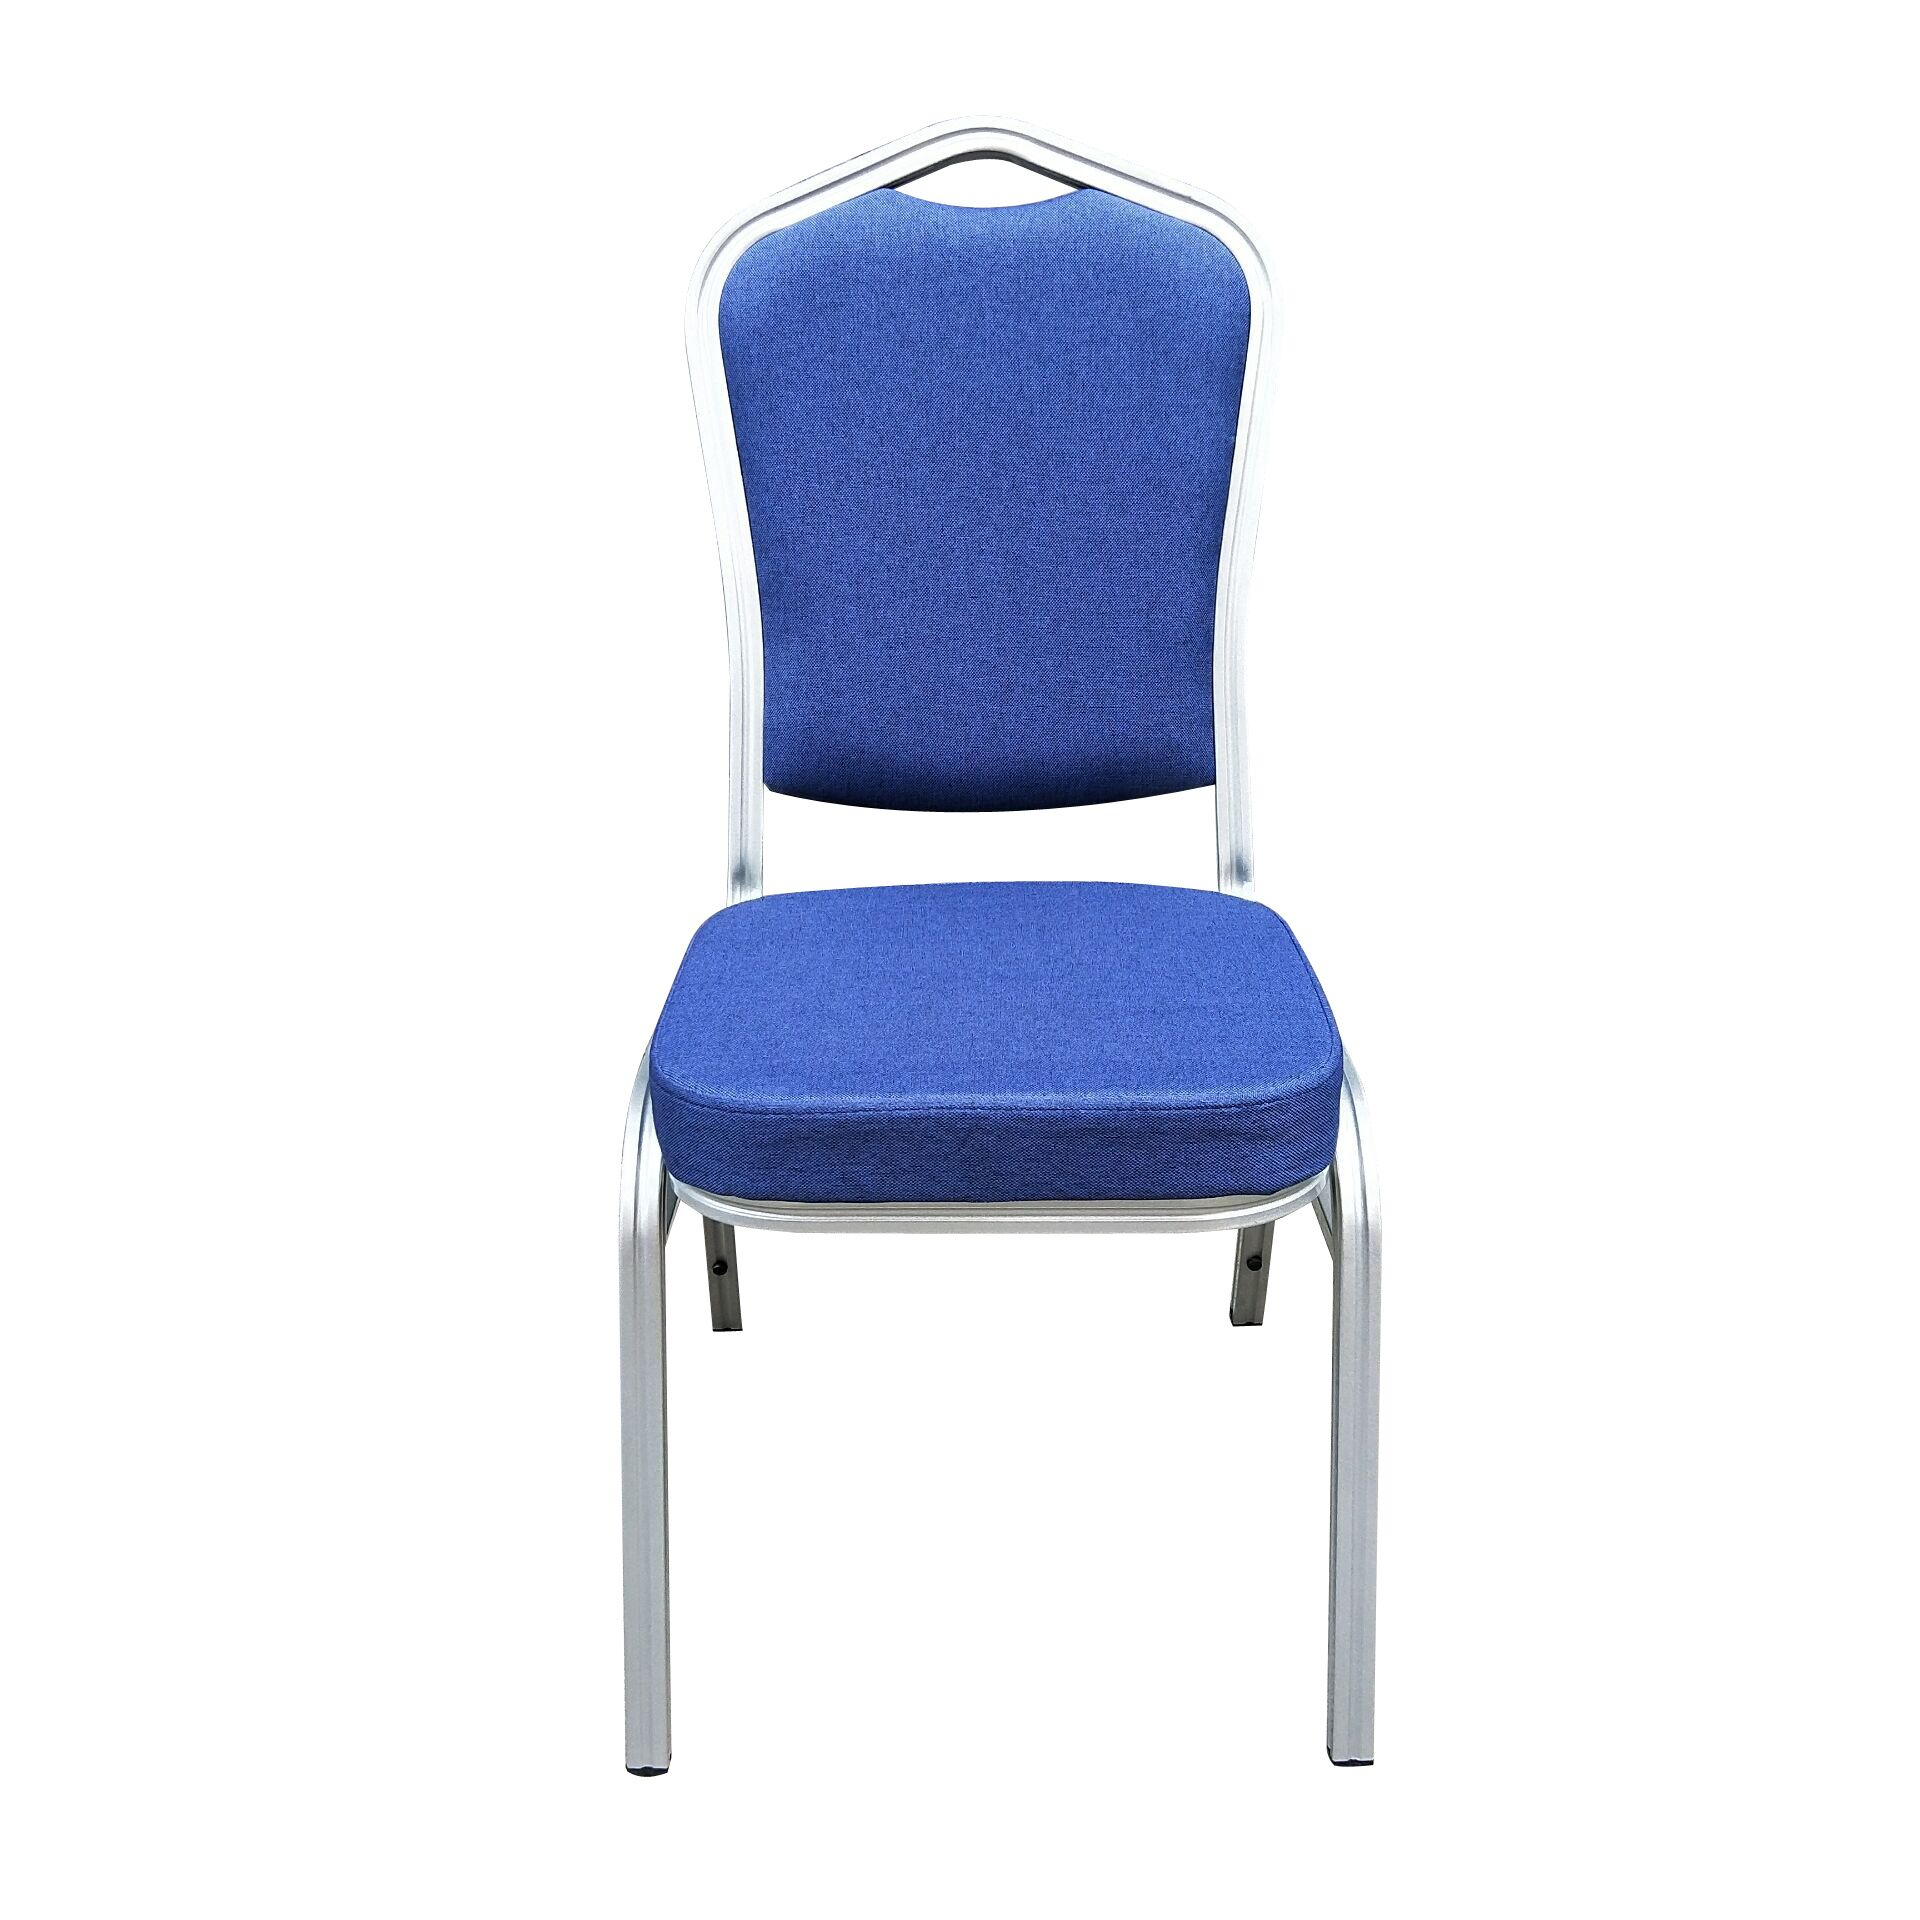 Factory Outlets Best Church Chairs - banquet chair SF-L01 – Jiangchang Furniture